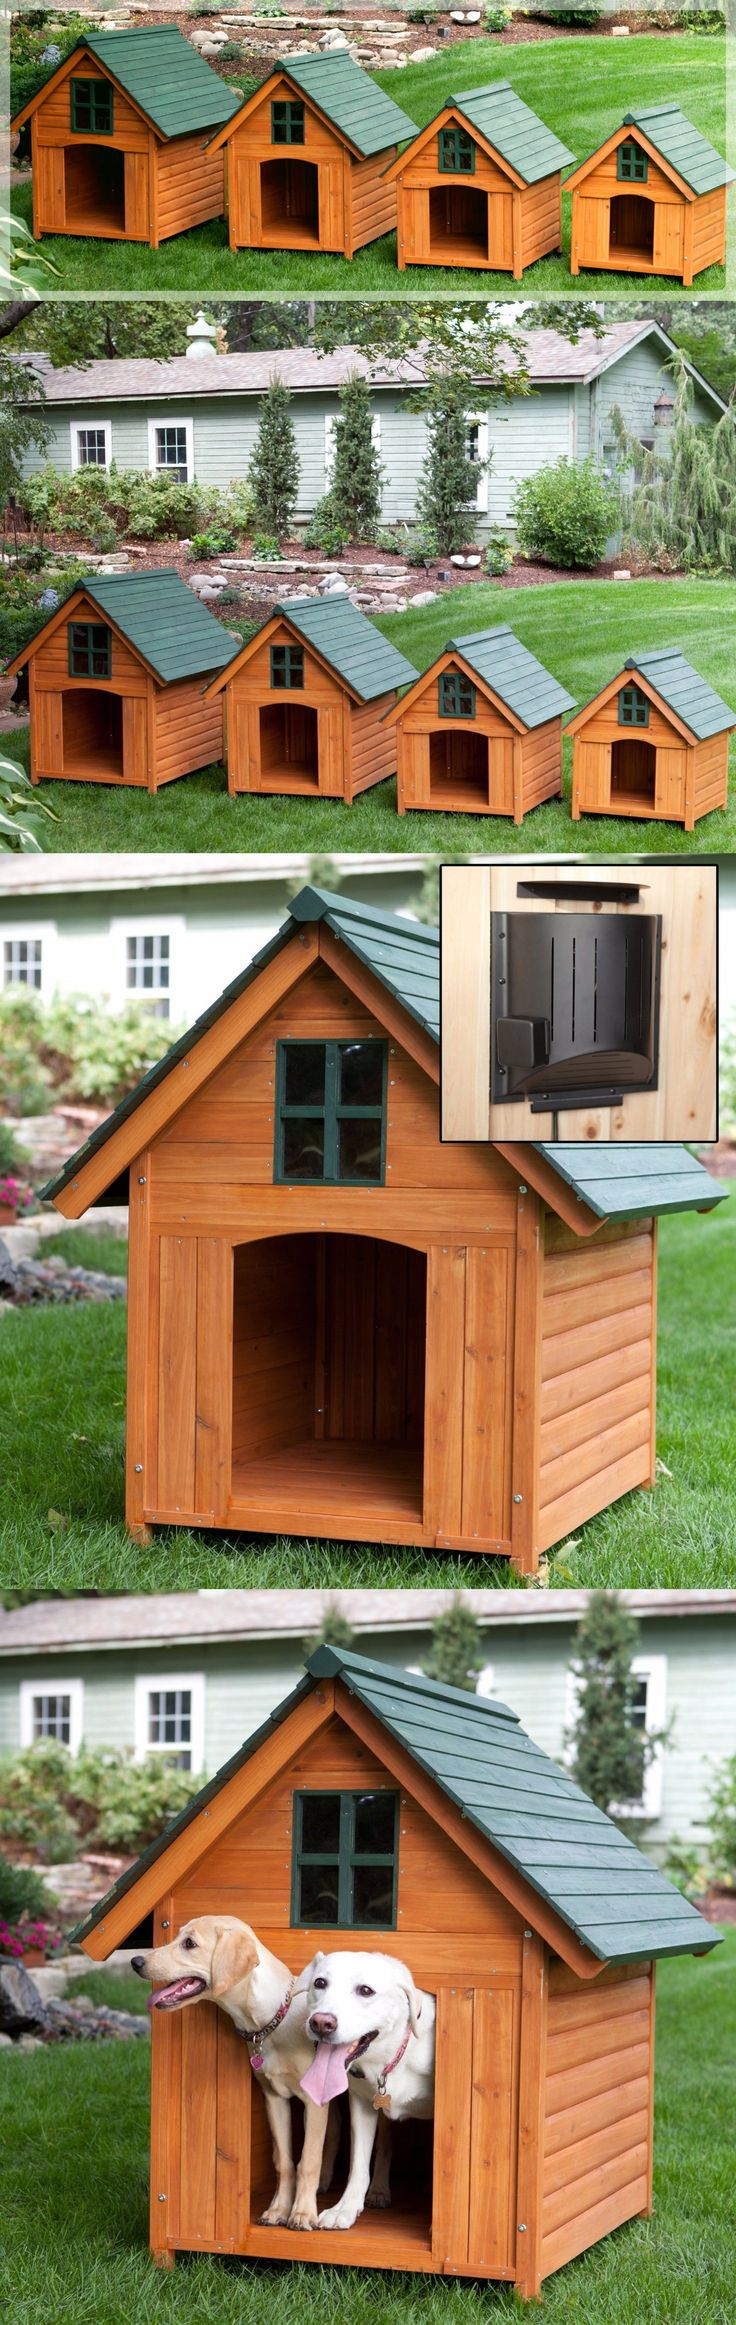 Dog Houses 108884: Heated Dog House Weather Resistant Wood Large Outdoor Pet Shelter Cage Kennel BUY IT NOW ONLY: $369.99